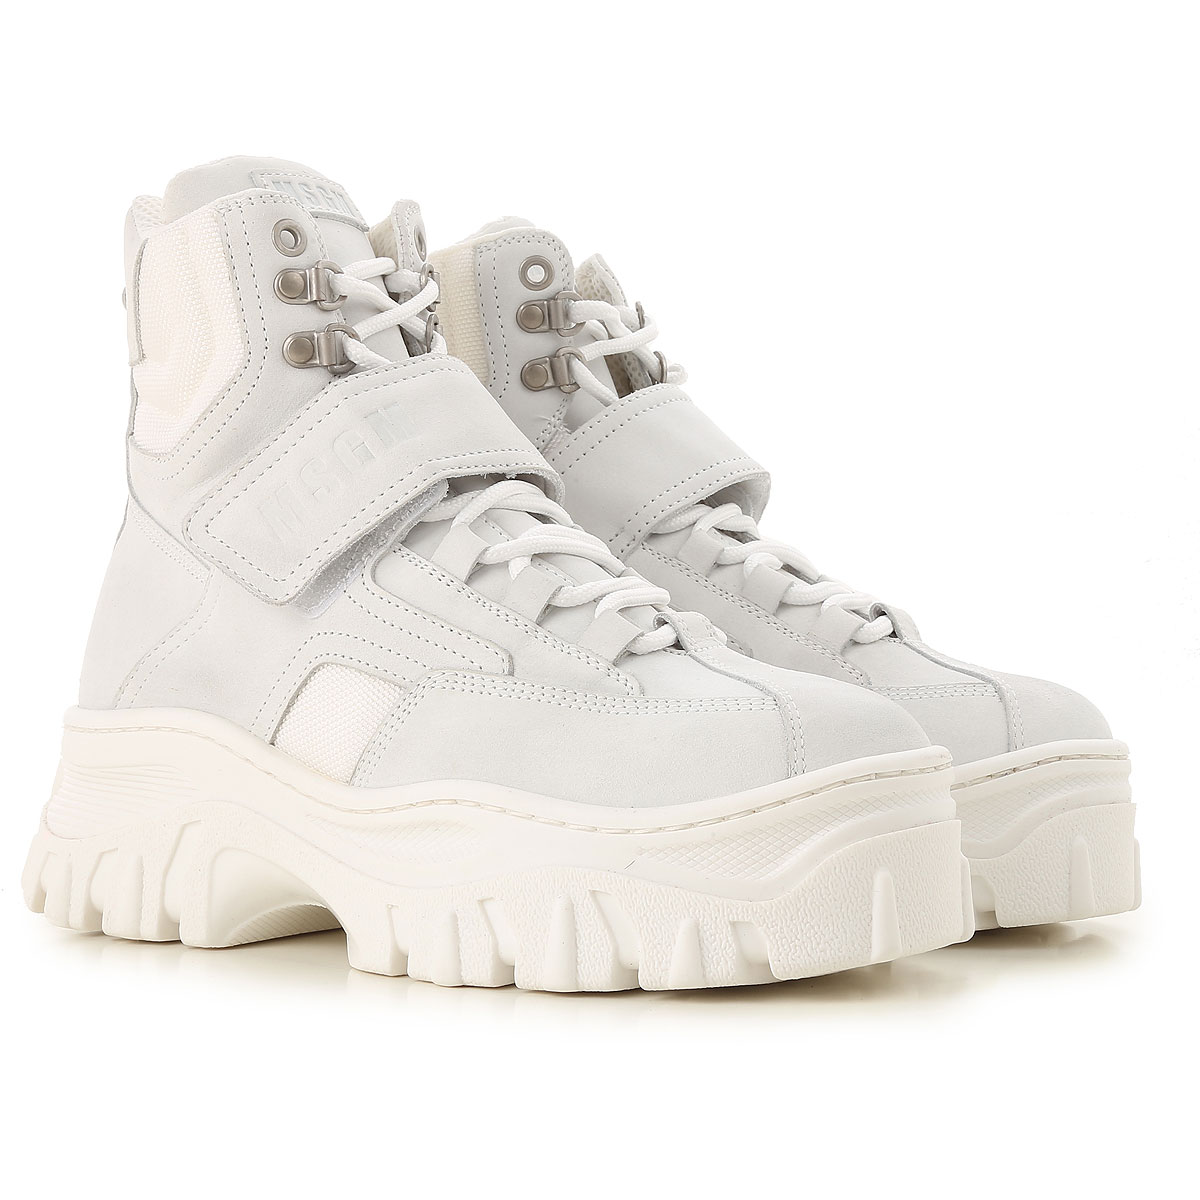 Image of MSGM Boots for Women, Booties, White, Suede leather, 2017, 5 6